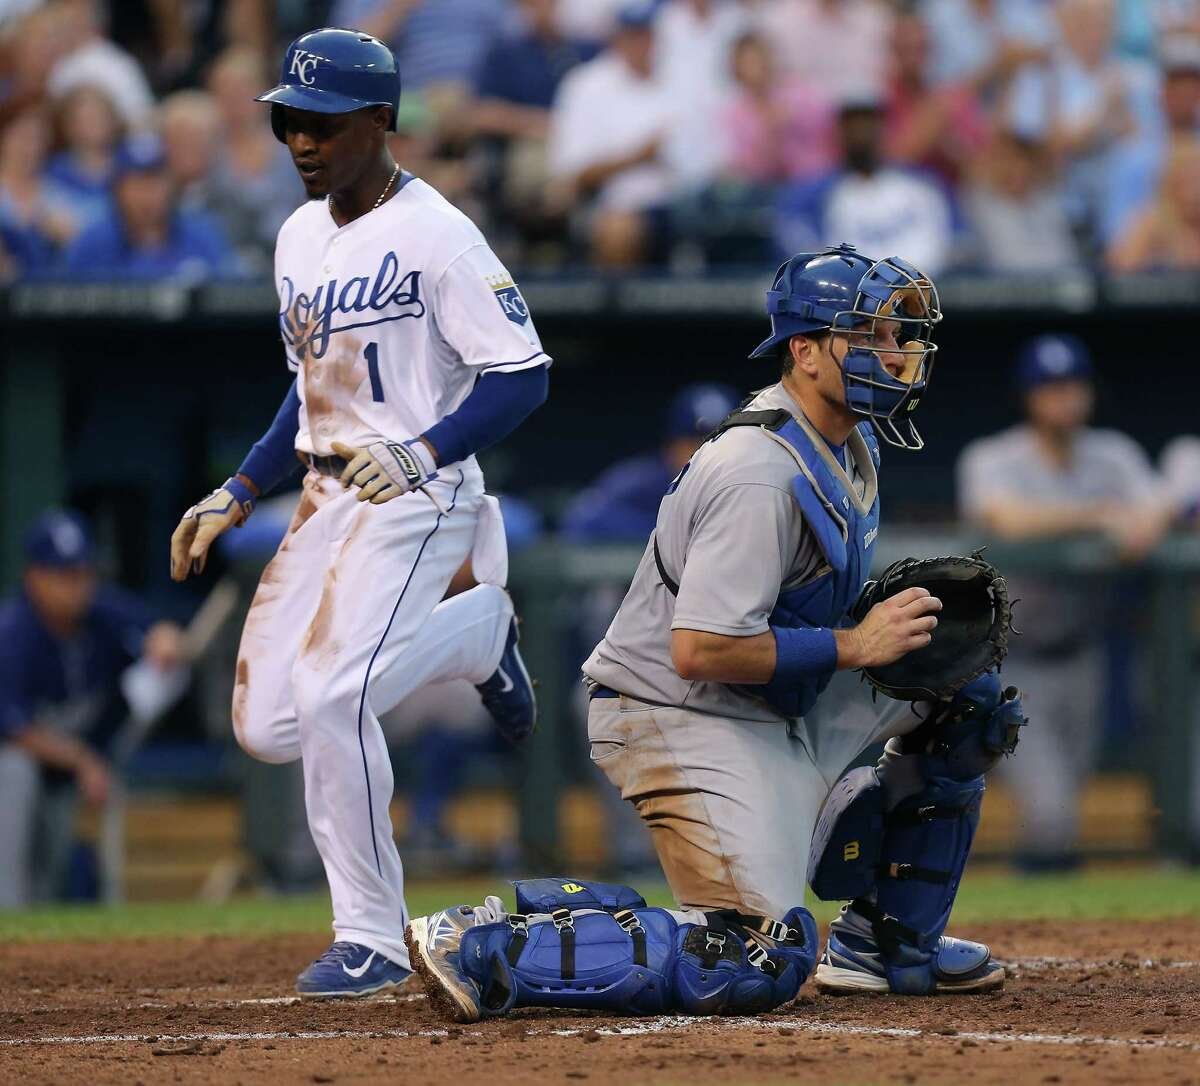 KANSAS CITY, MO - JUNE 23: Jarrod Dyson #1 of the Kansas City Royals crosses home to score past A.J. Ellis #17 of the Los Angeles Dodgers on a Lorenzo Cain single in the fifth inning at Kauffman Stadium on June 23, 2014 in Kansas City, Missouri. (Photo by Ed Zurga/Getty Images) ORG XMIT: 477585465